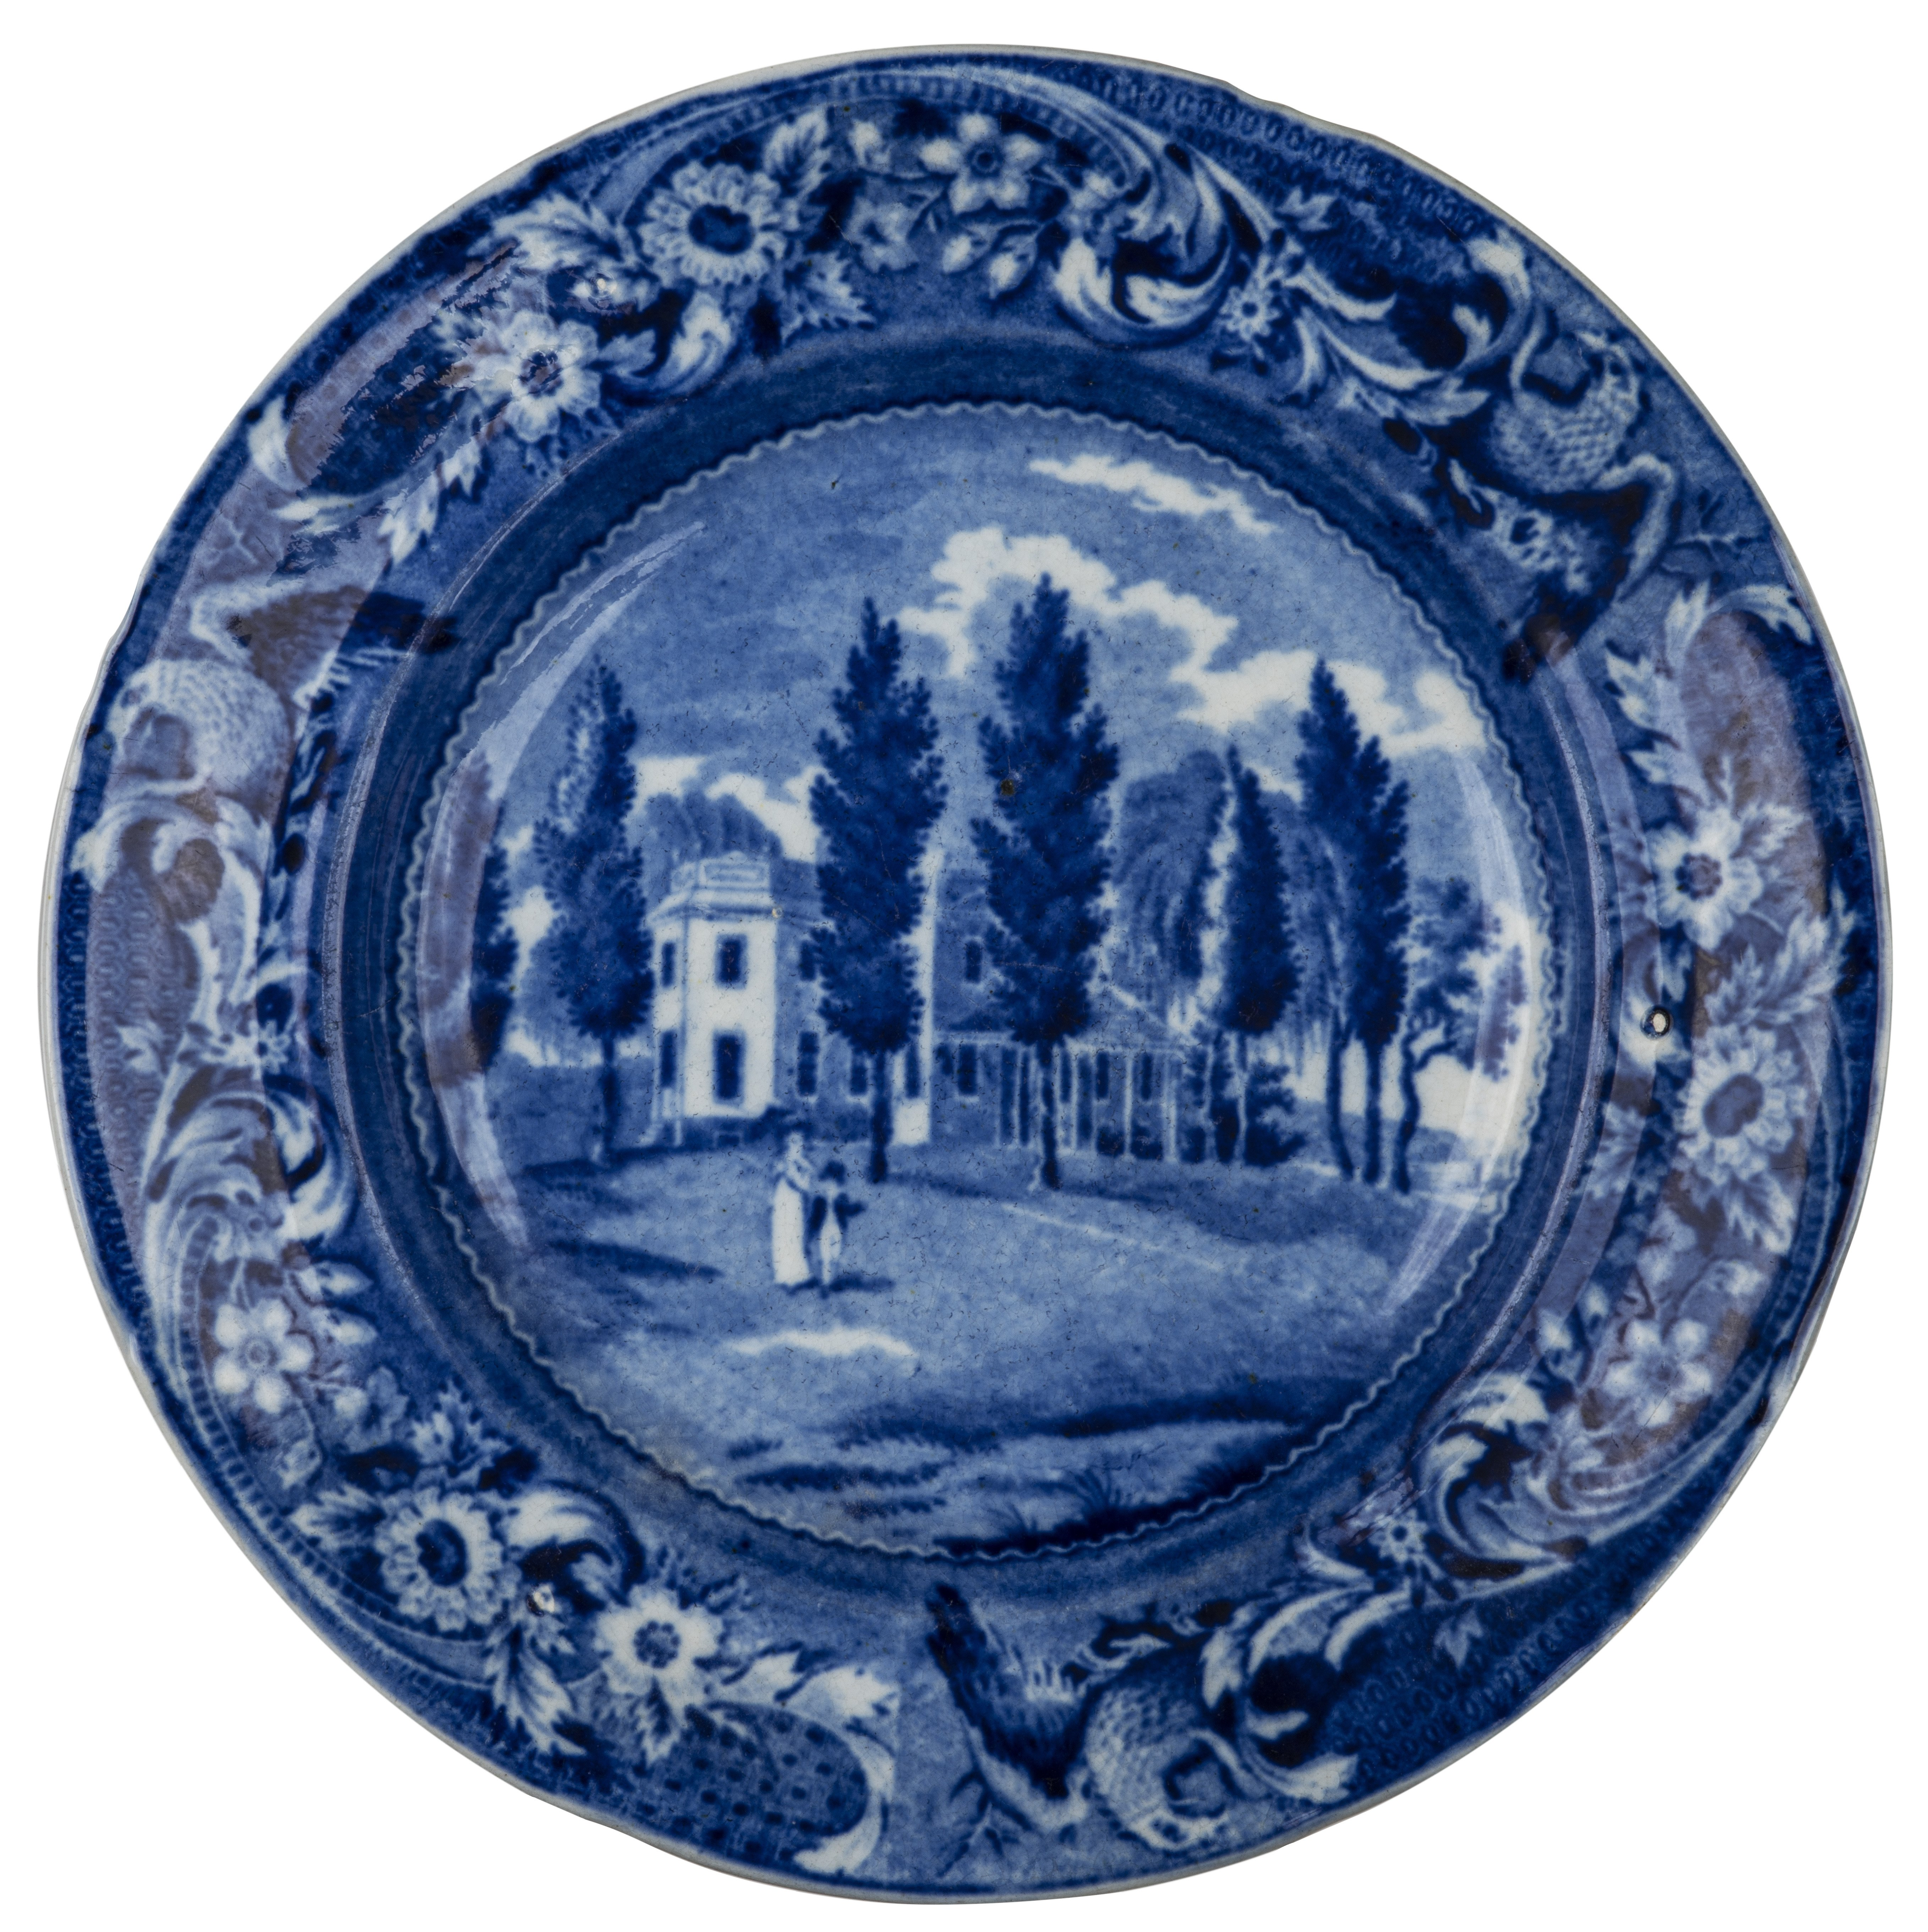 An Antique Blue Historical Staffordshire Plate Hoboken In New Jersey